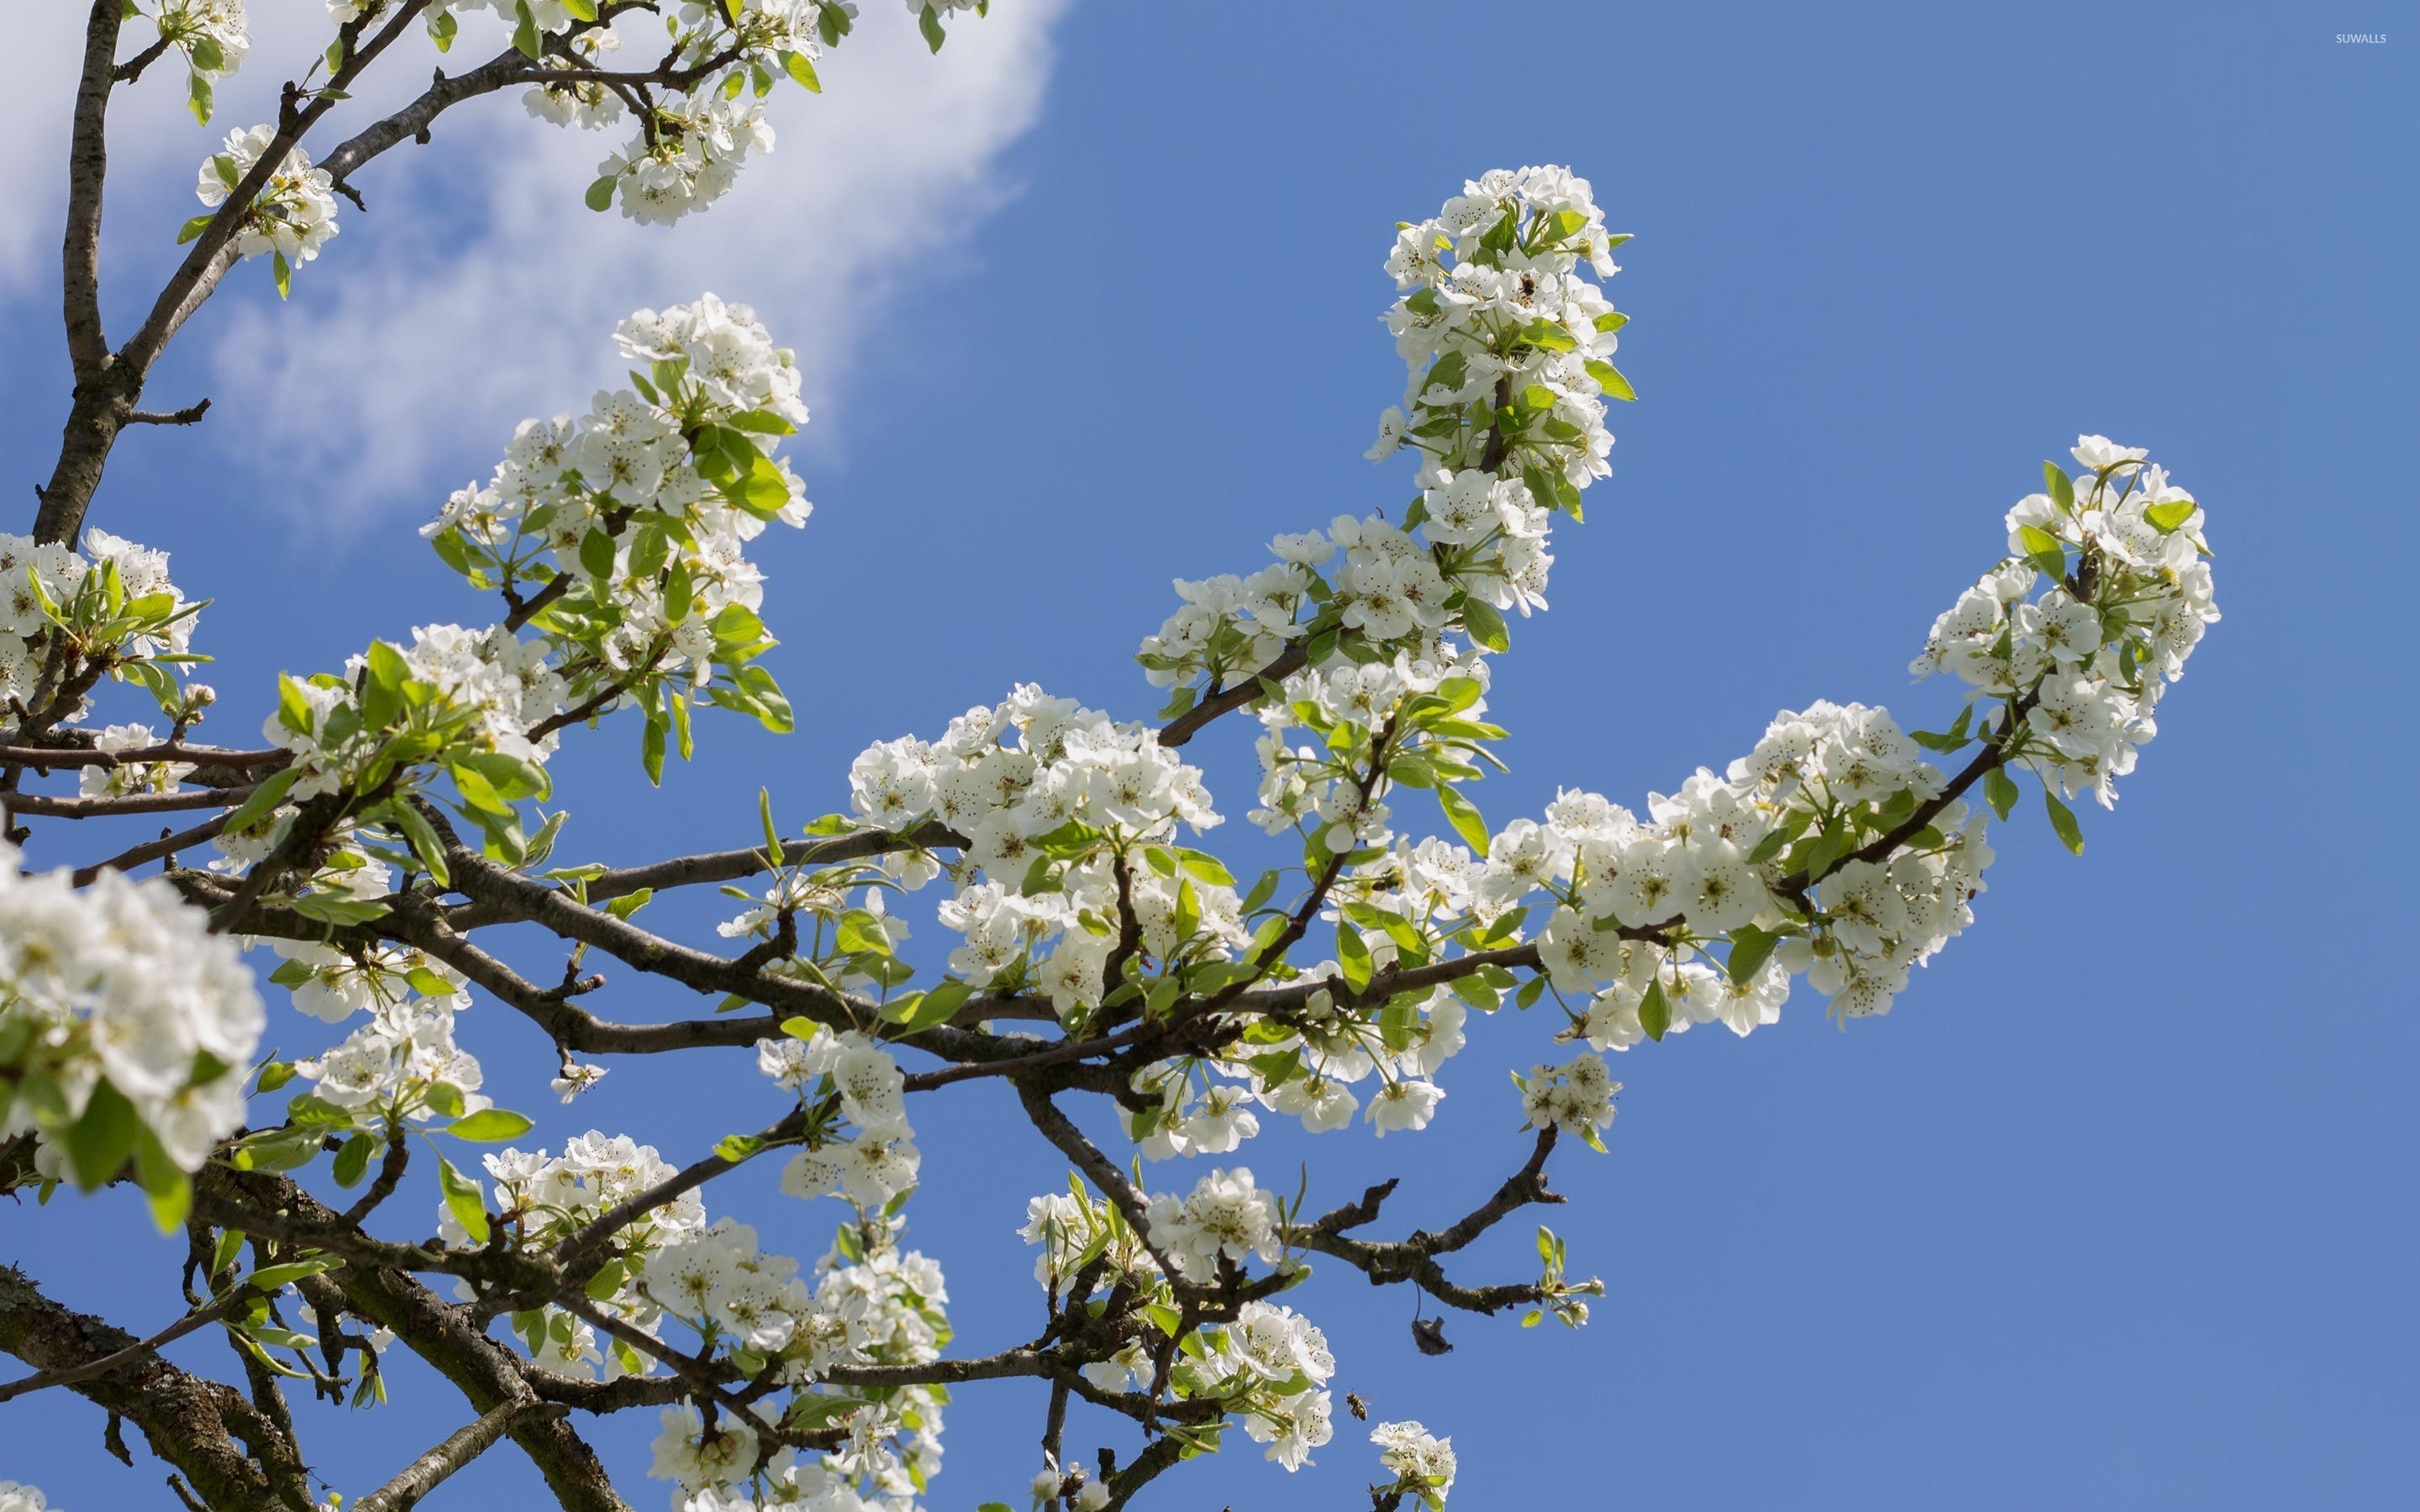 Res: 2880x1800, Pear branches full of flowers wallpaper